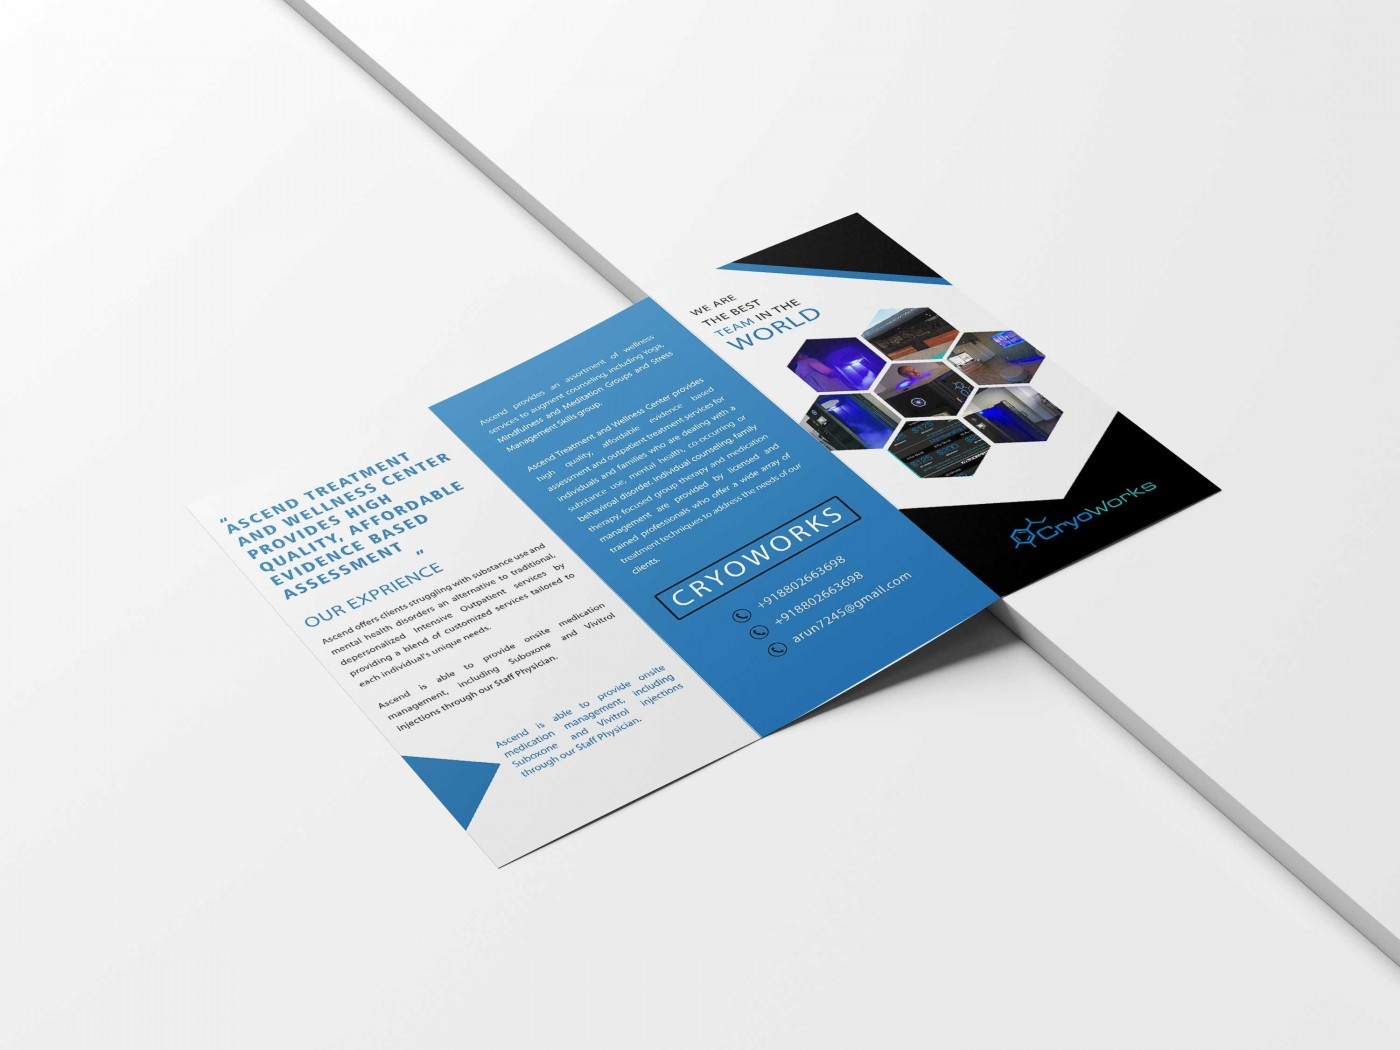 004 Top Photoshop Brochure Design Template Free Download Highest Clarity 1400